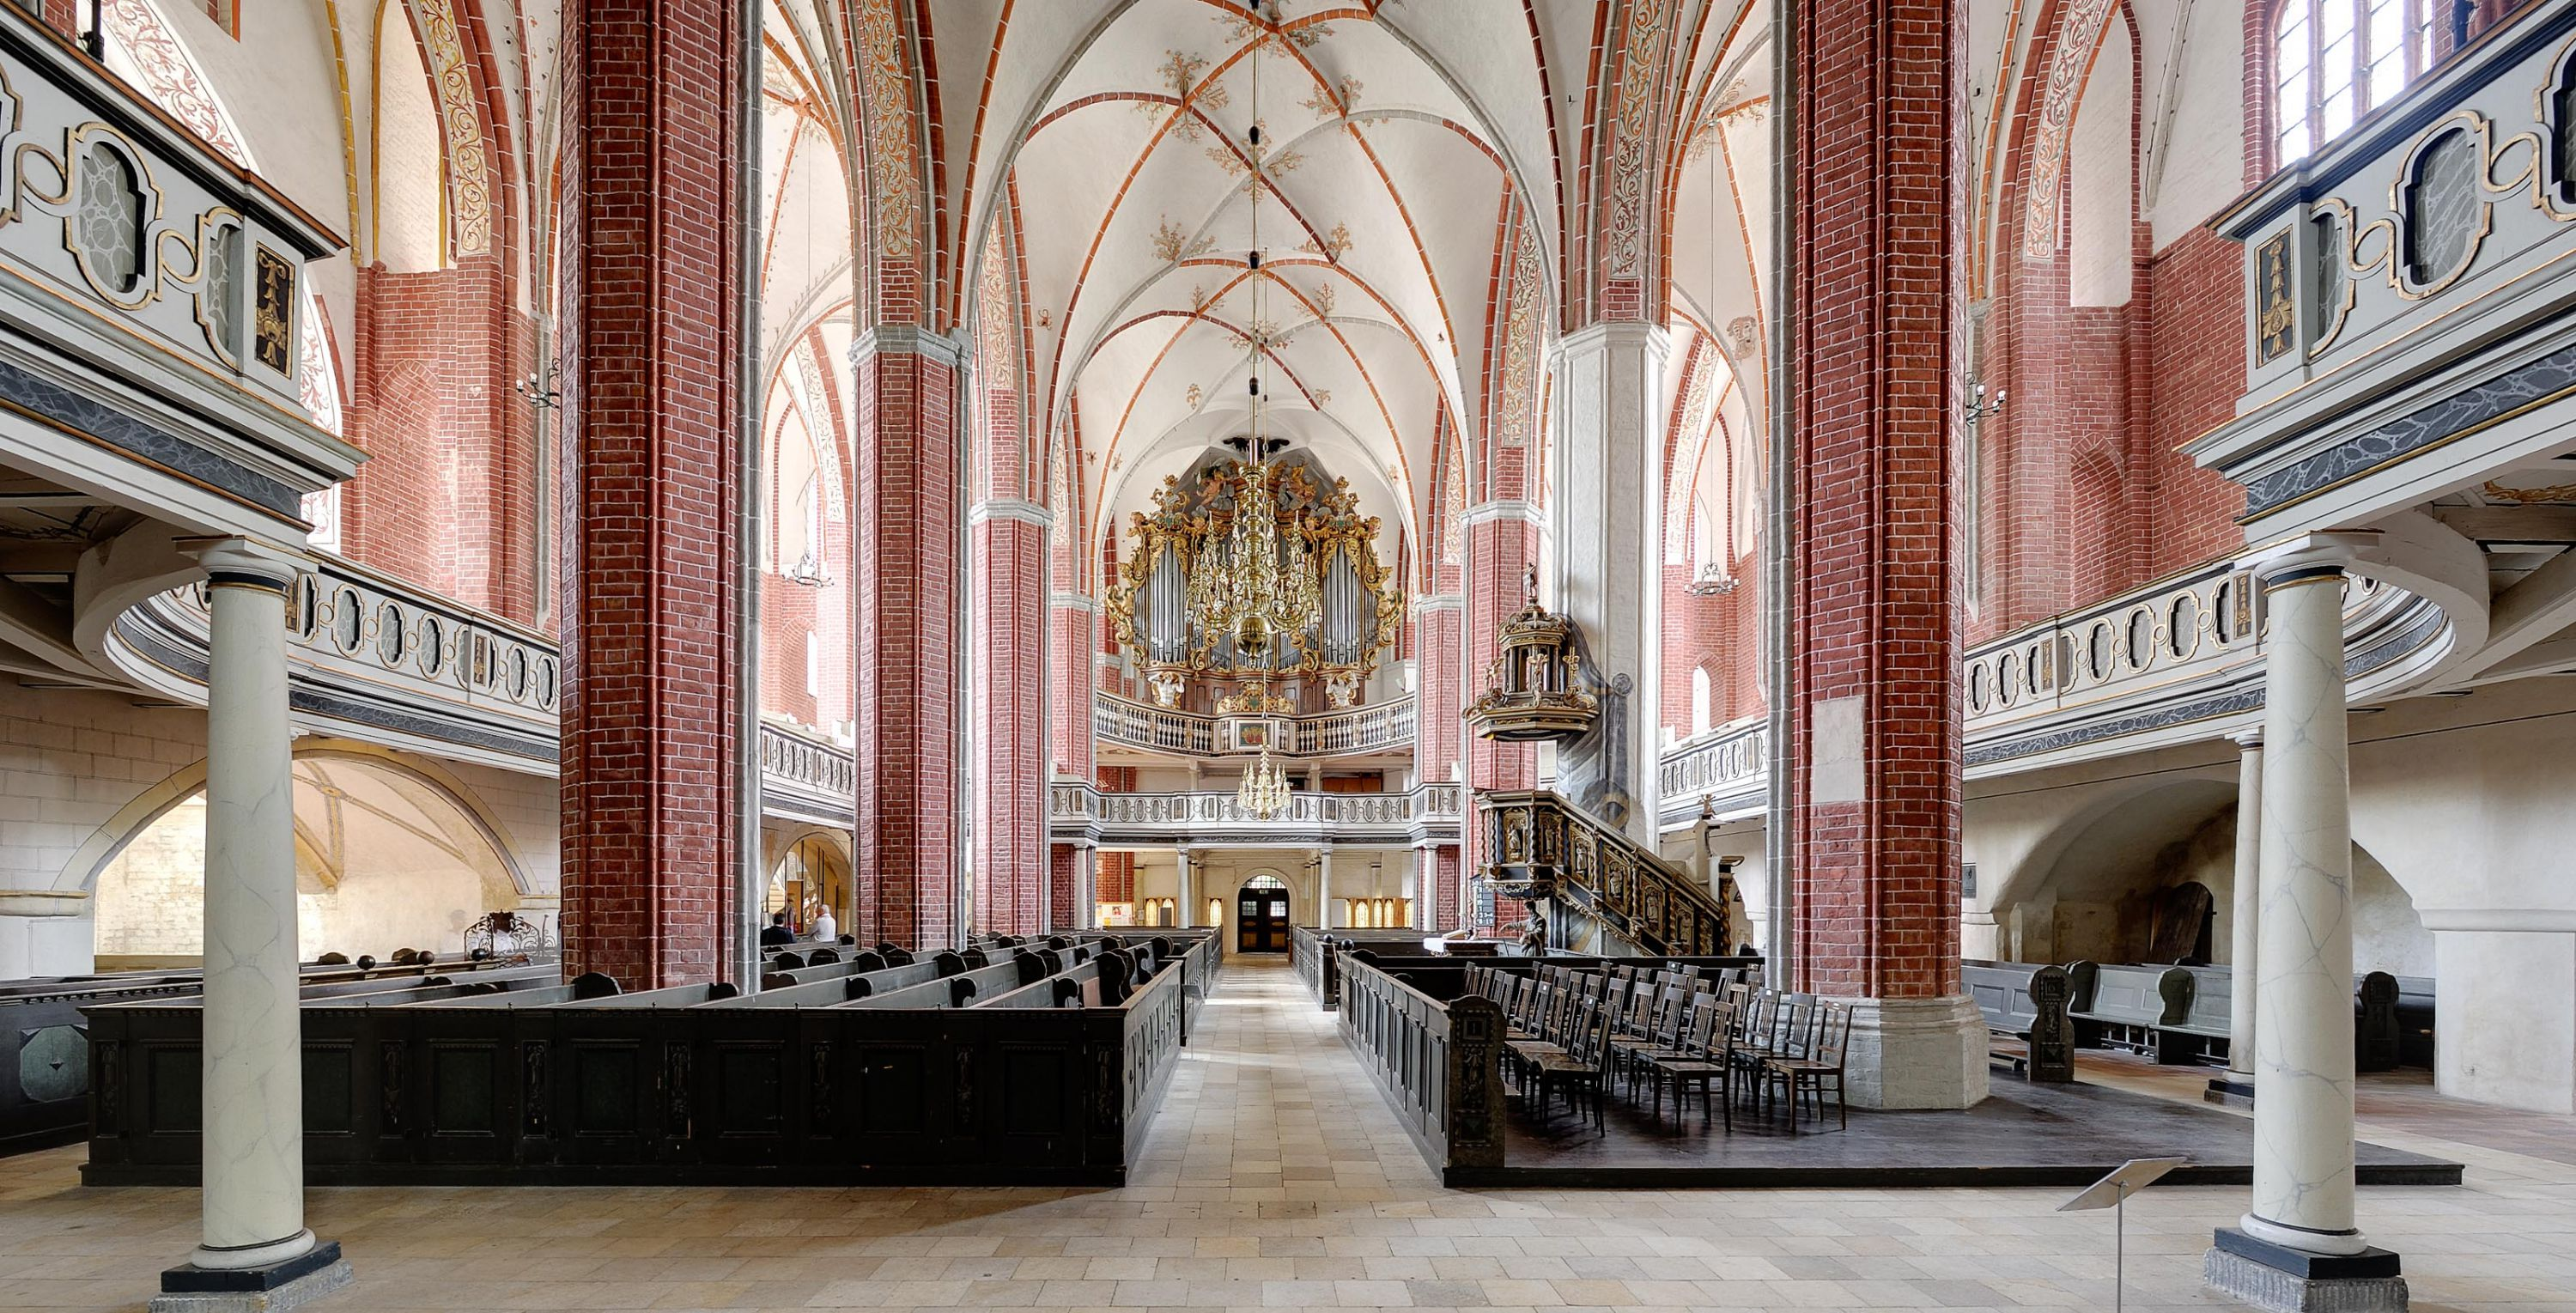 Brandenburg Havel